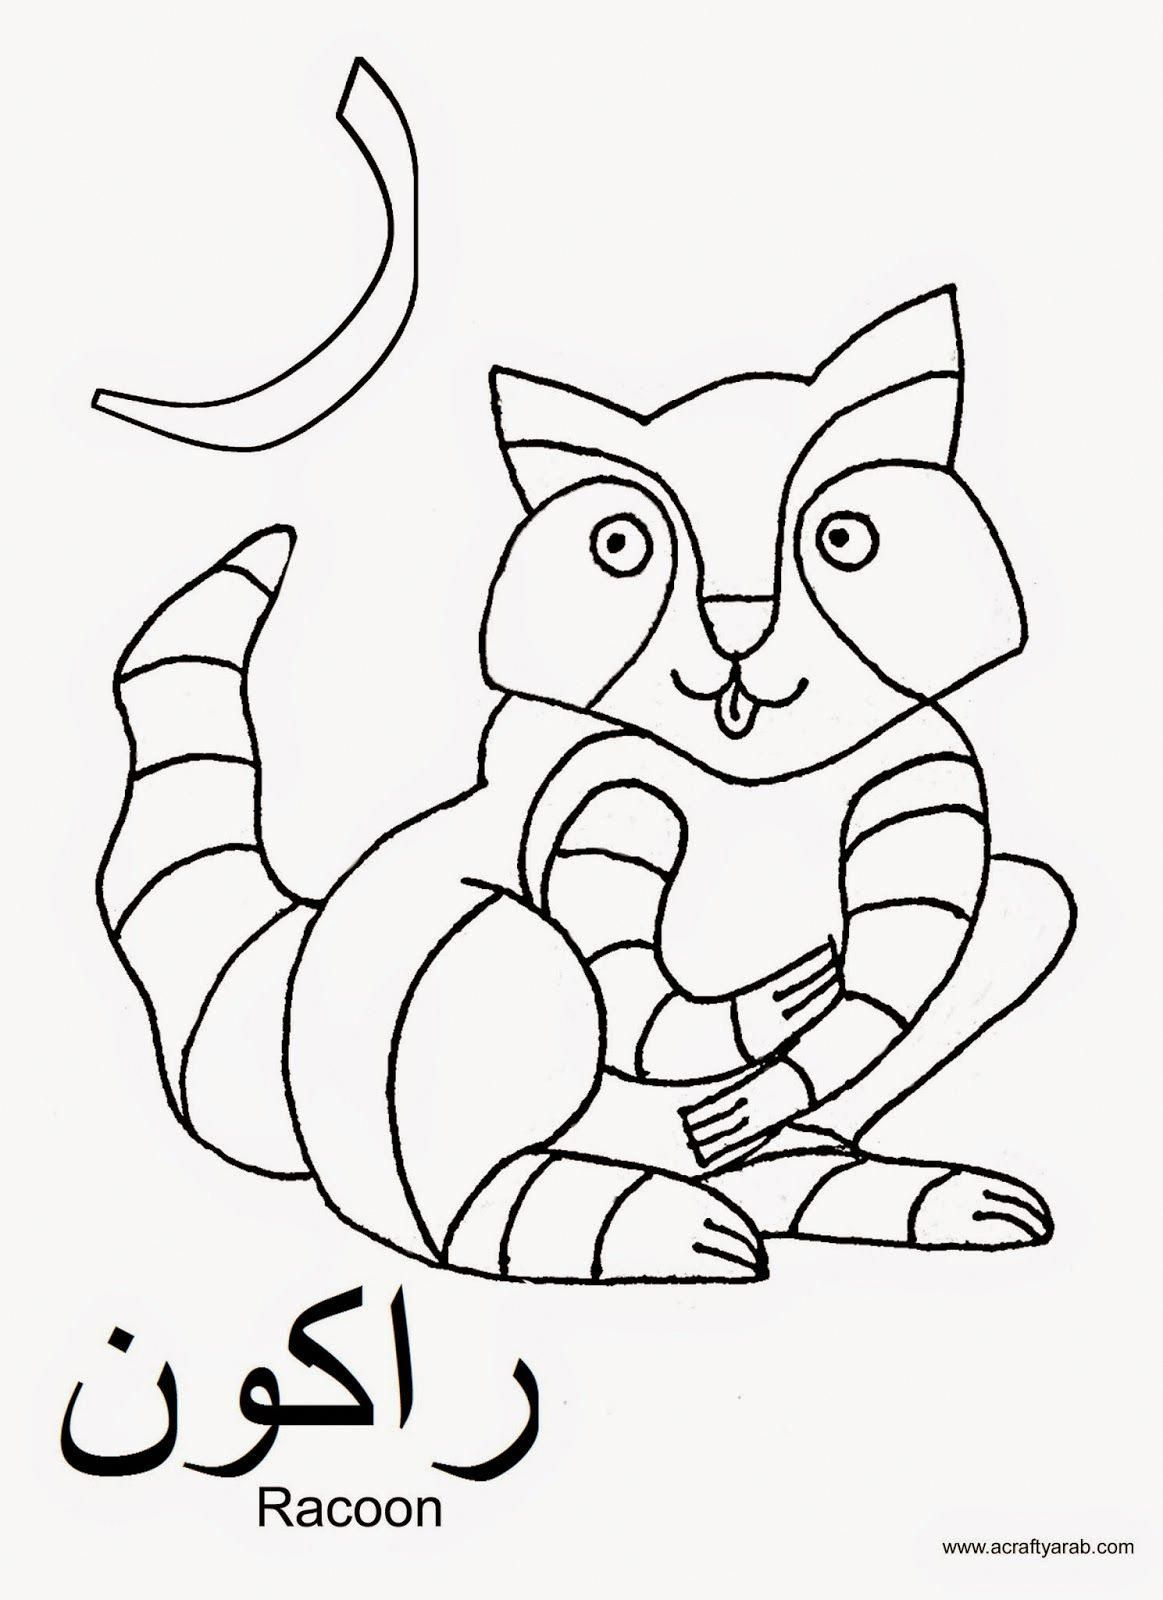 Printable Pages Of The Arabic Alphabet To Color Alphabet Coloring Pages Arabic Alphabet Alphabet Coloring